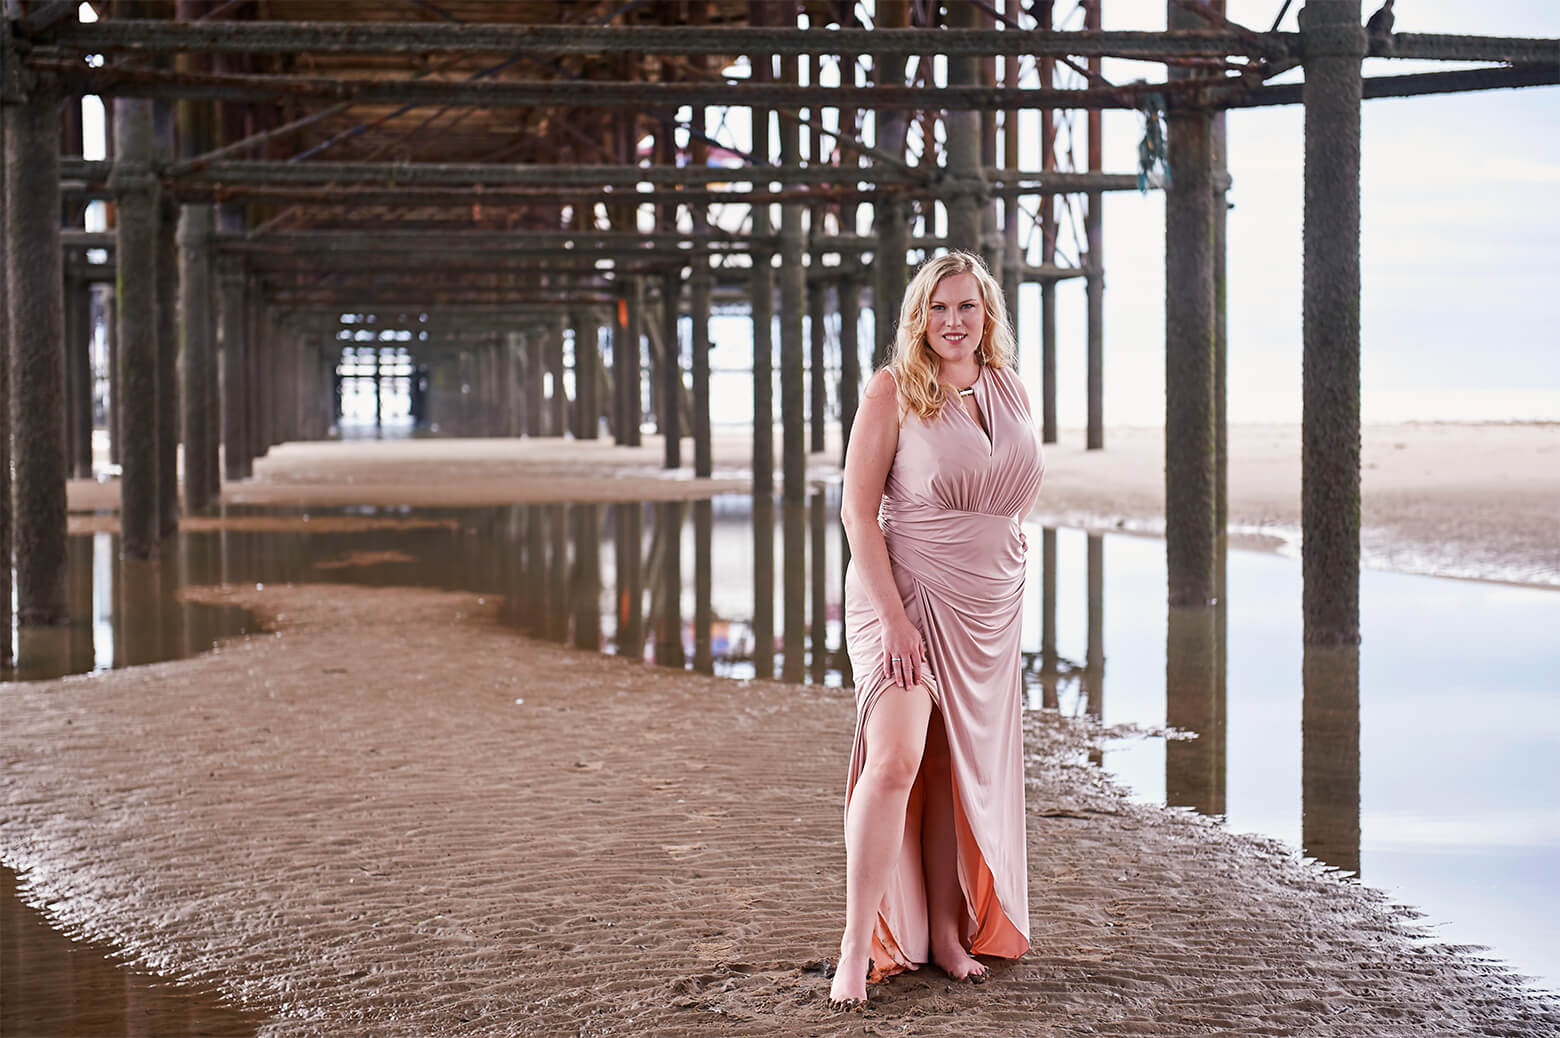 destination photography, blackpool, beach, ursula schmitz, photographer, dream photo shoot, portraiture, portraitphotography, vintage, maxidress, curves, plus size, blonde, tall,